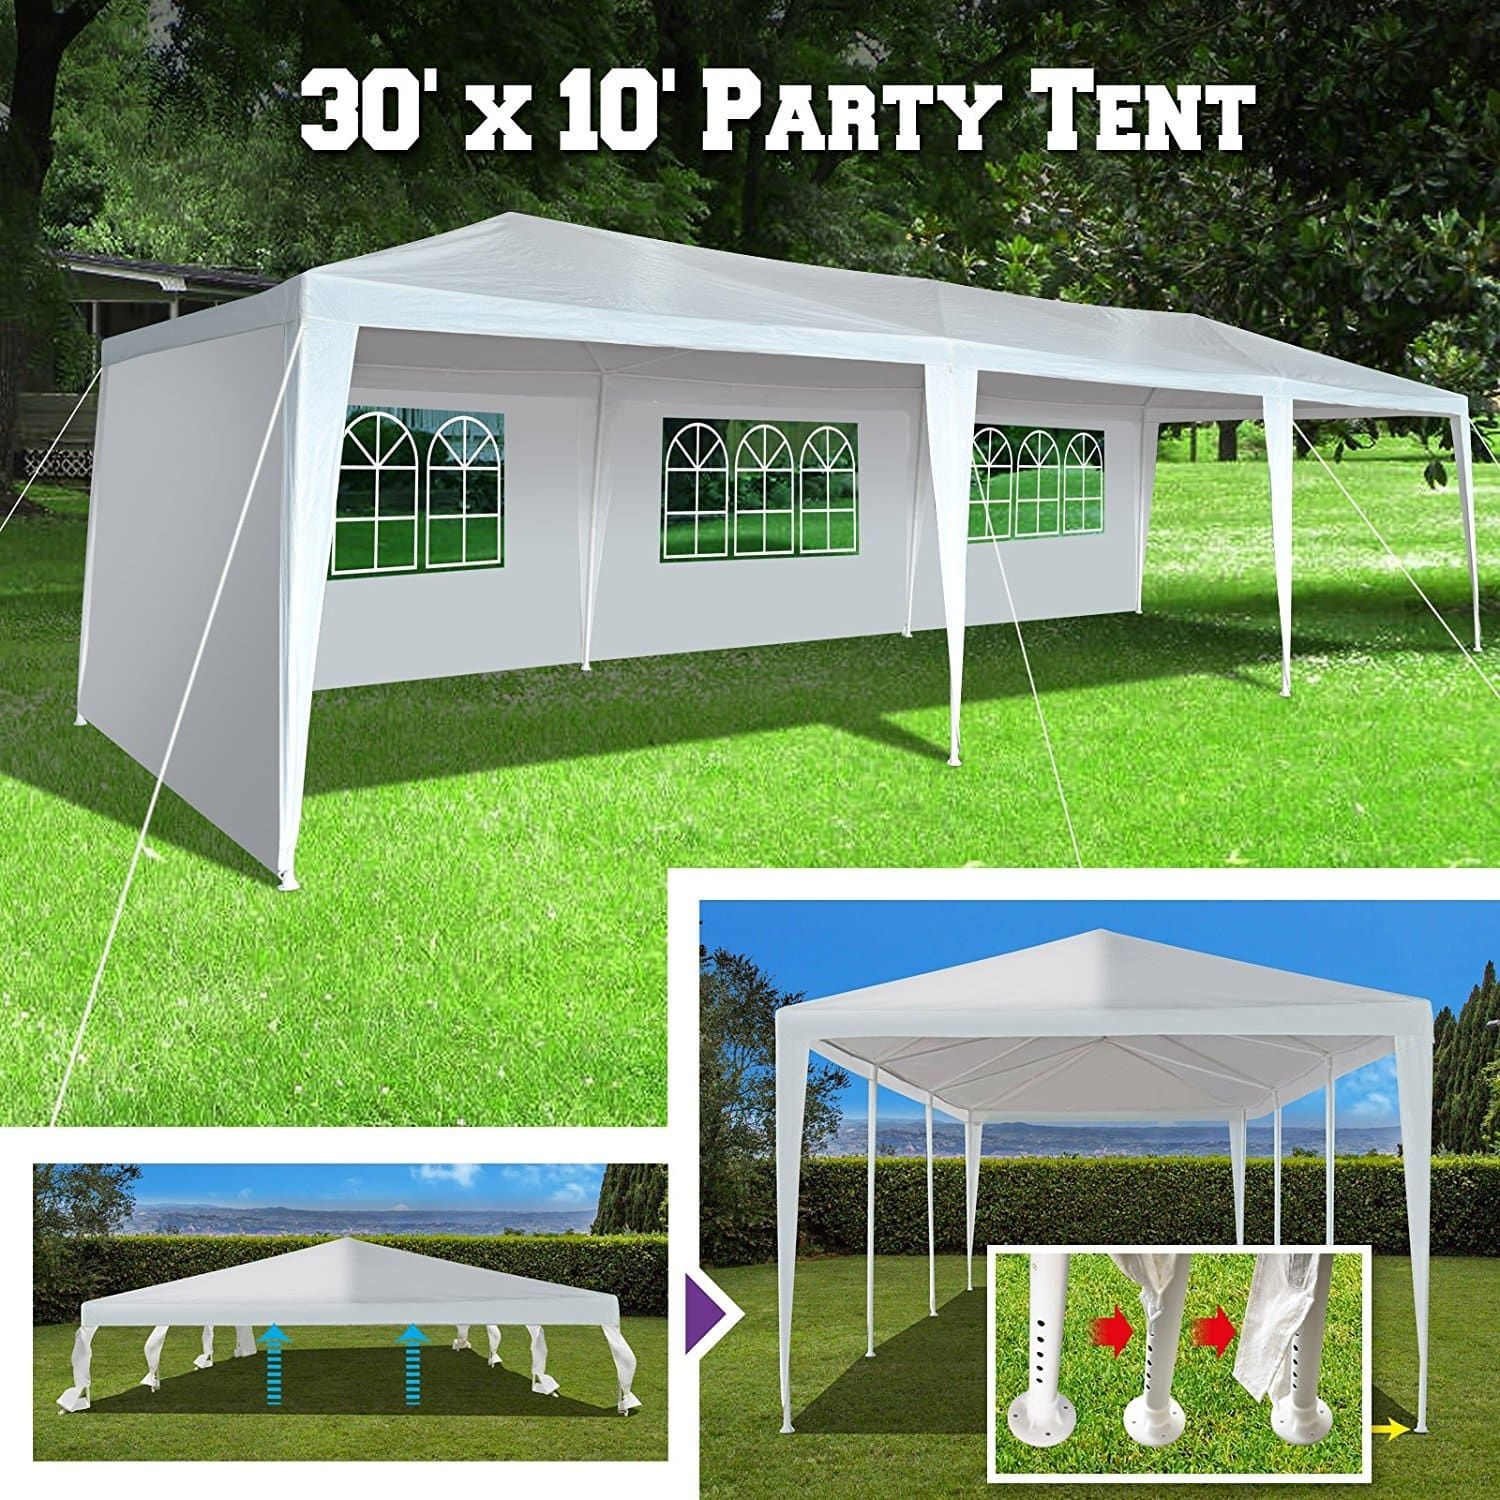 Best Large Party Tents for Outdoor Events Ultimate